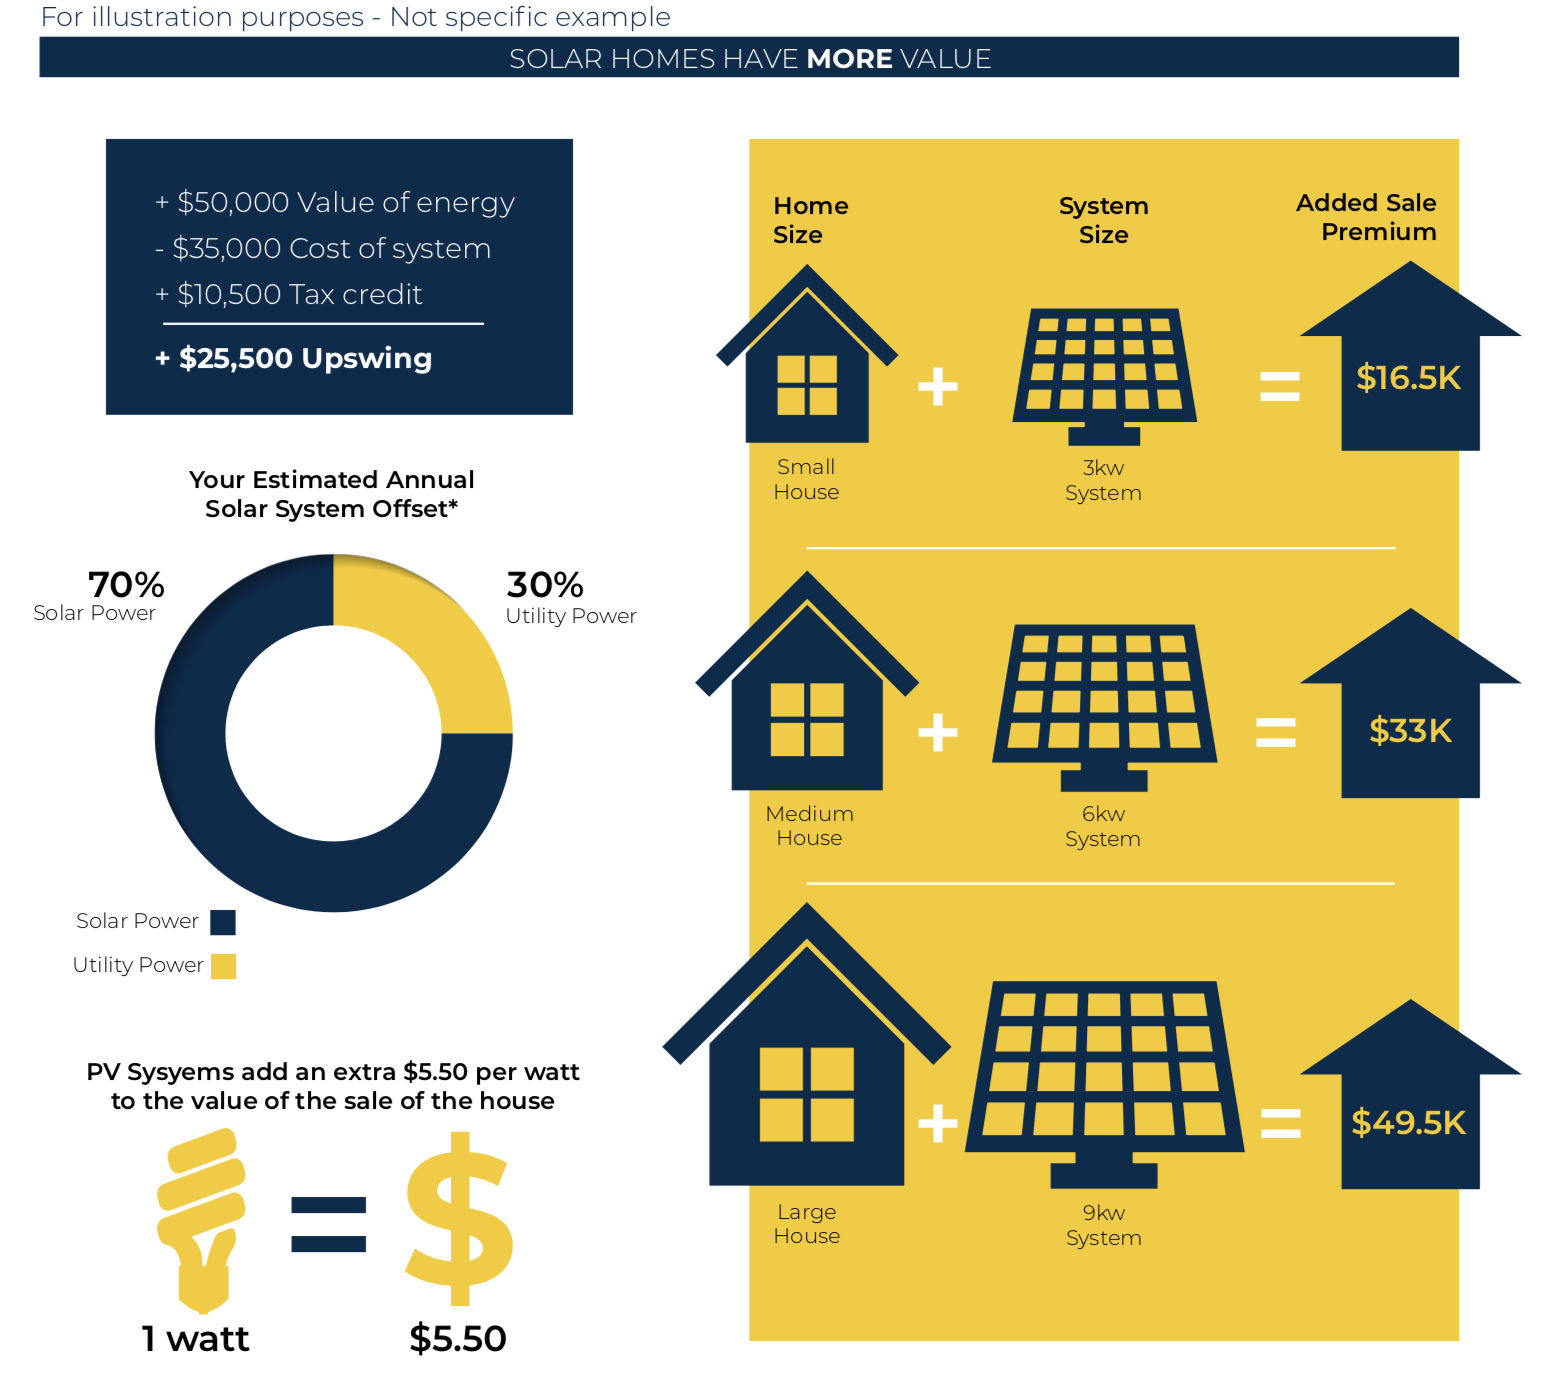 RETURN ON INVESTMENT FACTS FOR RESIDENTIAL SOLAR